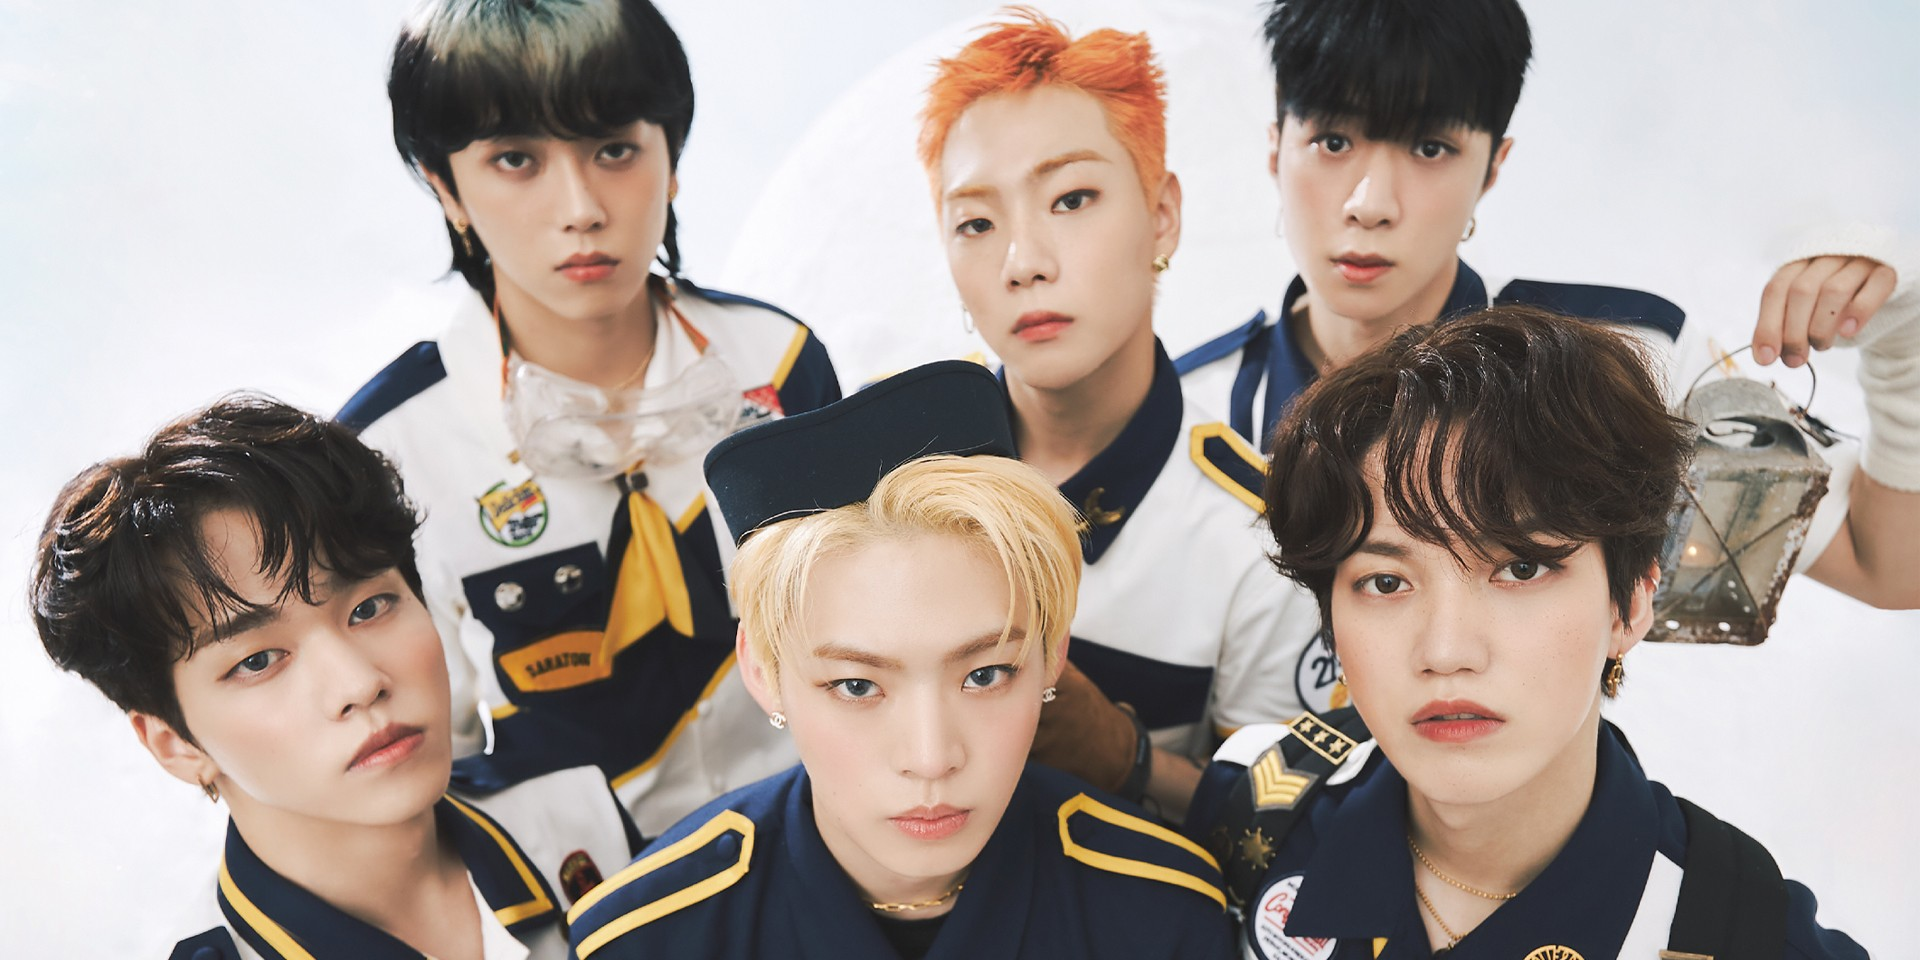 ONF on their carefree record 'SUMMER POP ALBUM [POPPING]' and growth since Road to Kingdom